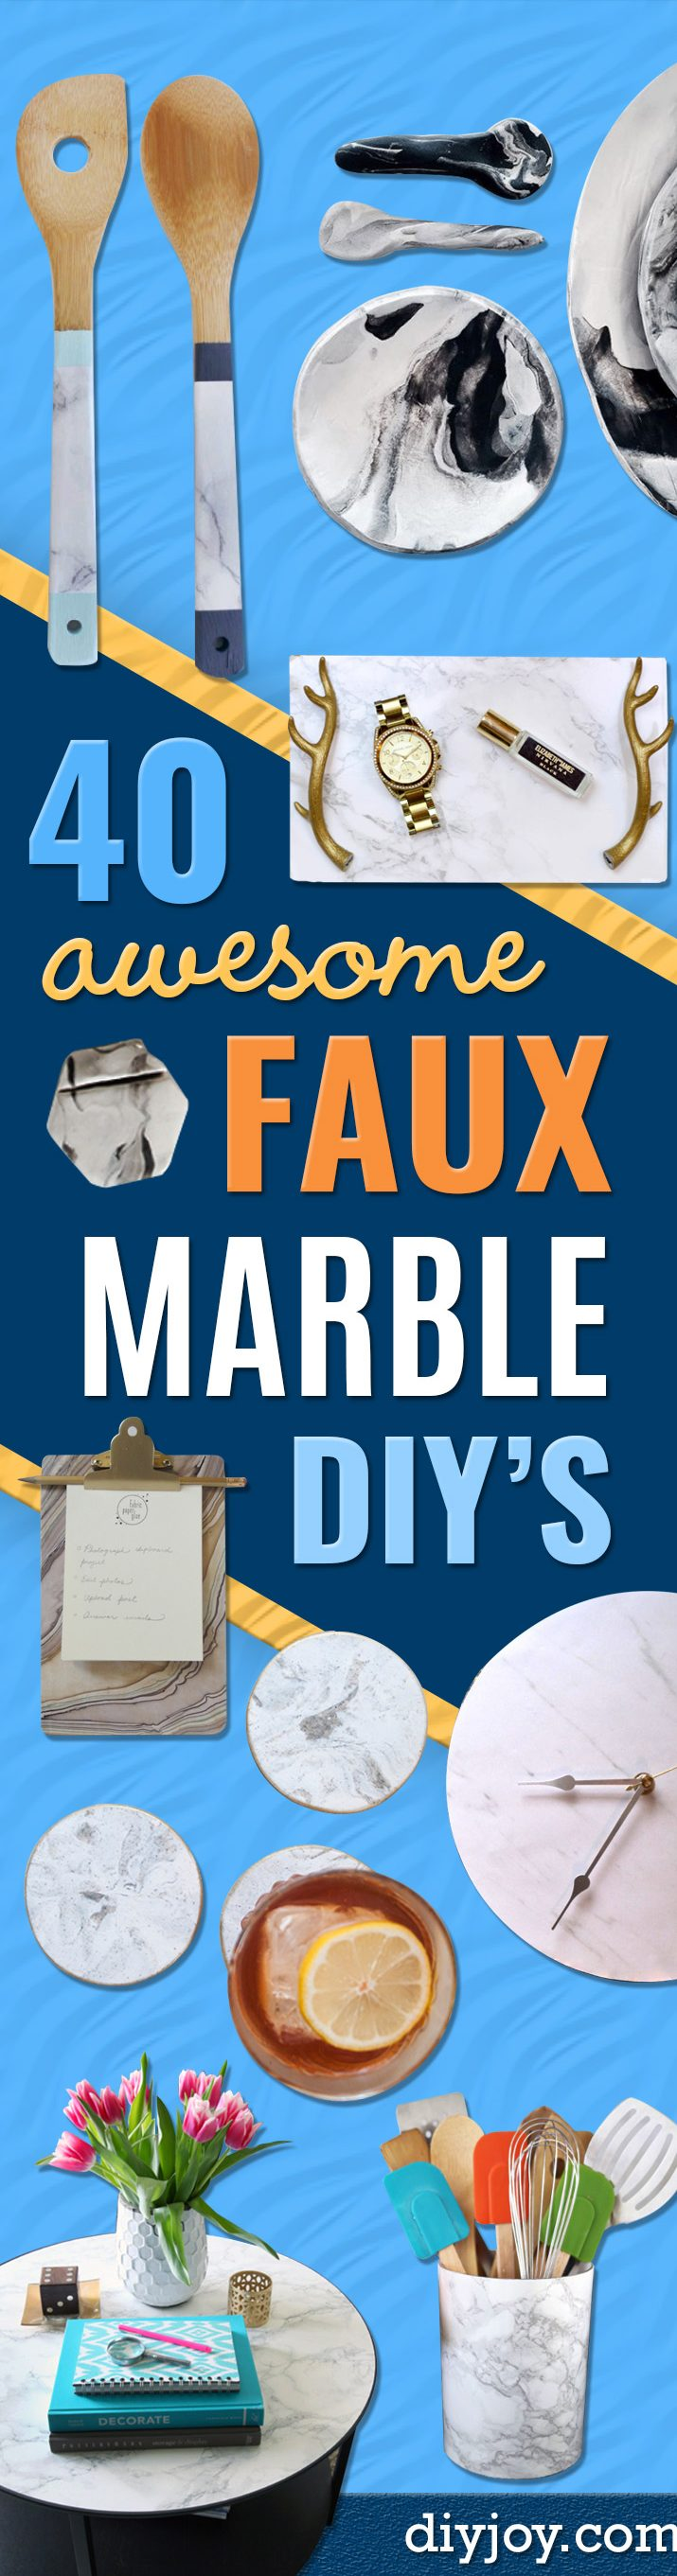 40 Awesome Faux Marble DIYs